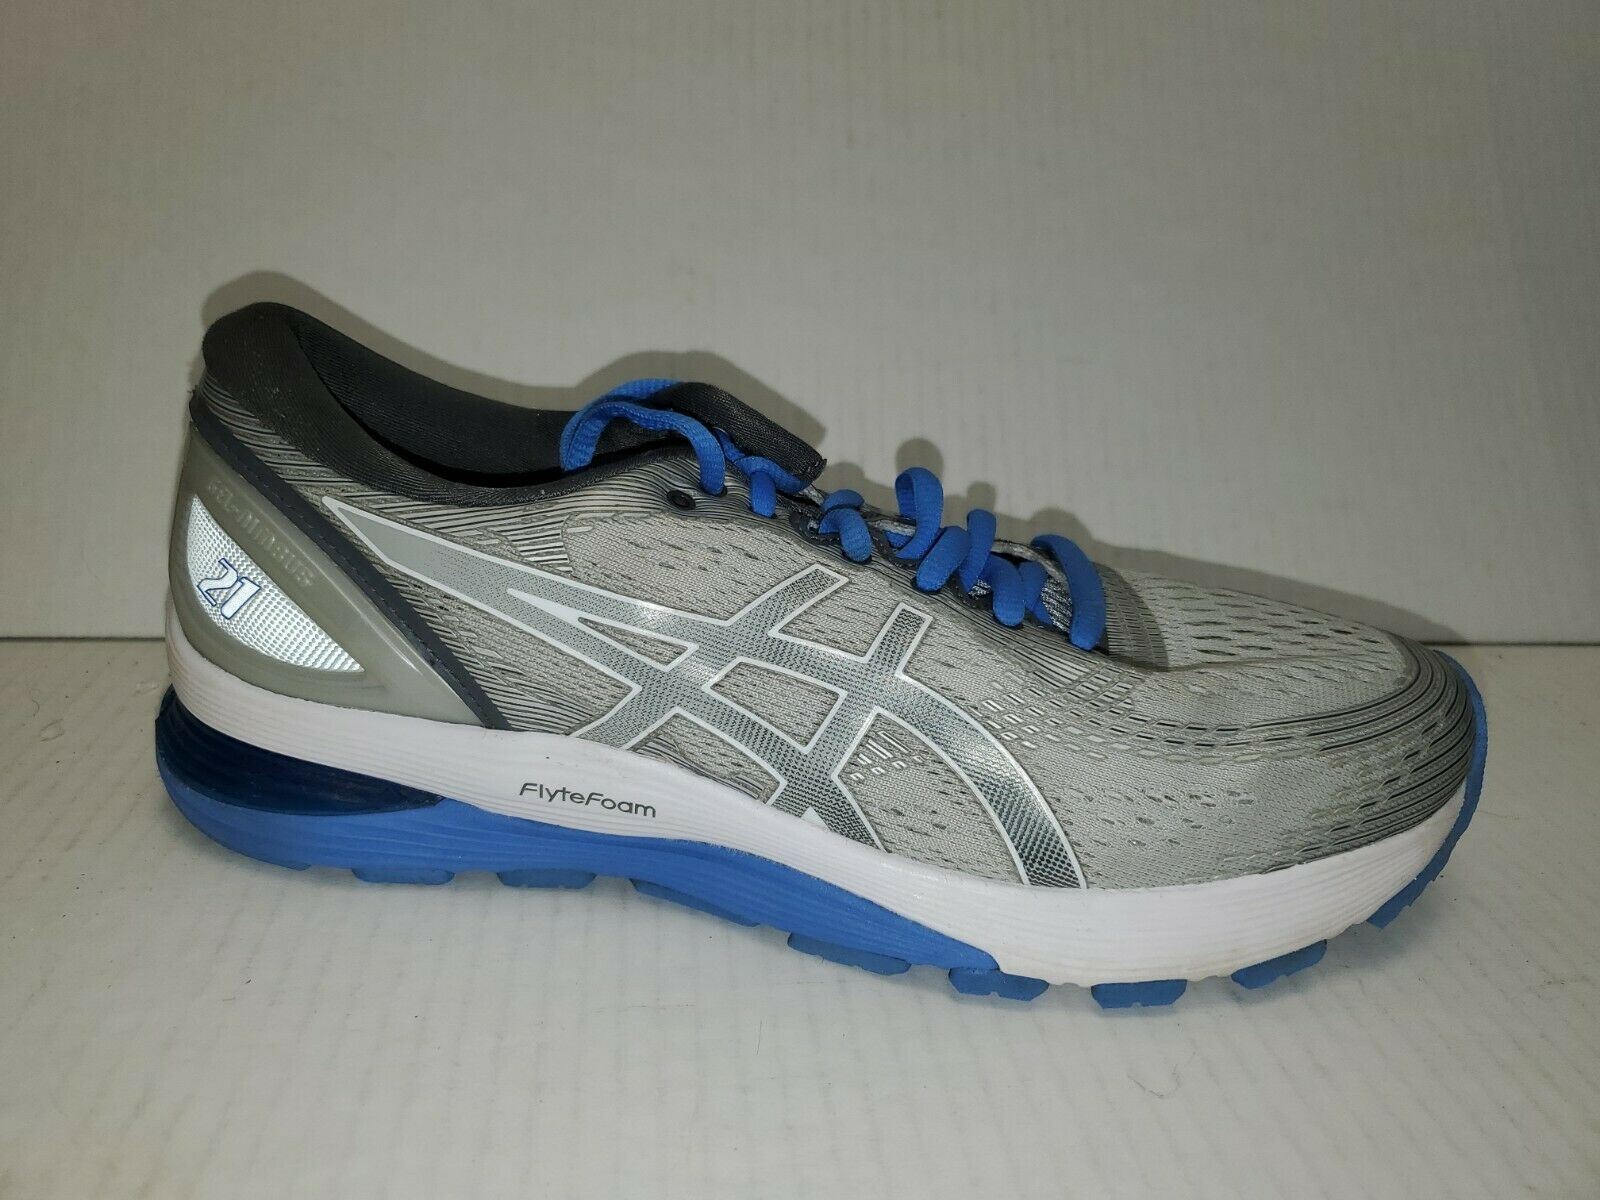 Primary image for Asics Gel Nimbus 21 Women's Blue Gray Running Tennis Shoes sz 9 1012A156